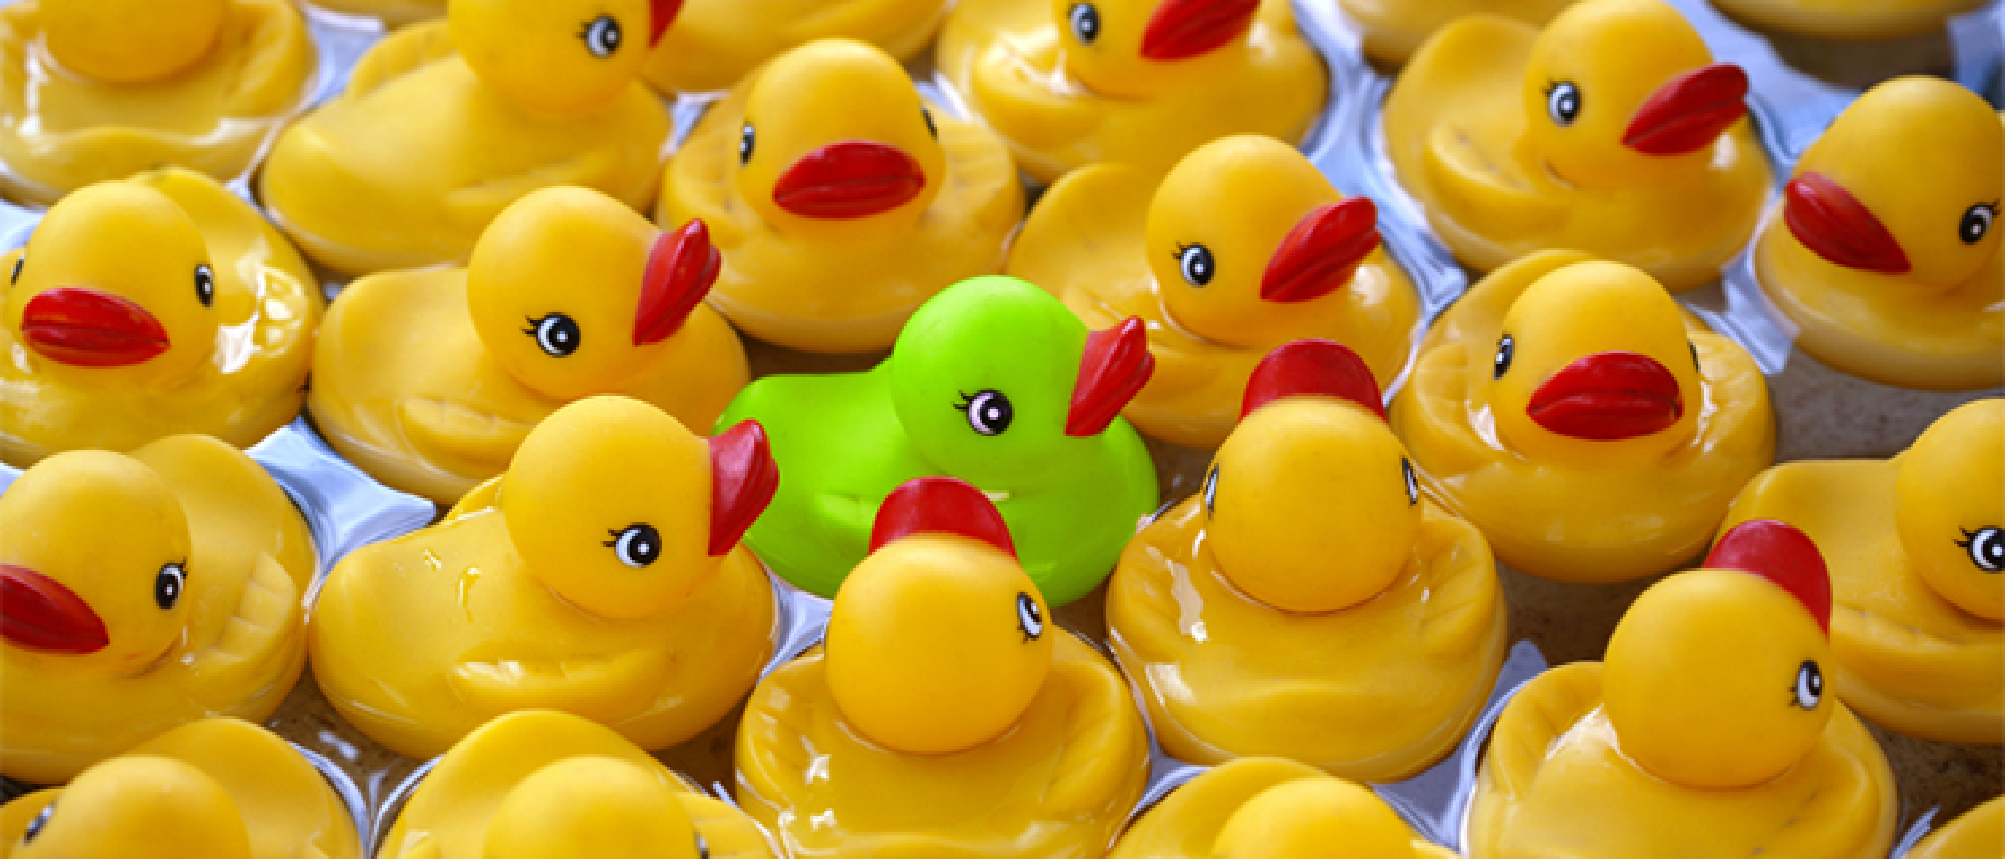 The Green Duck - join the flock for retail business tips and advice!